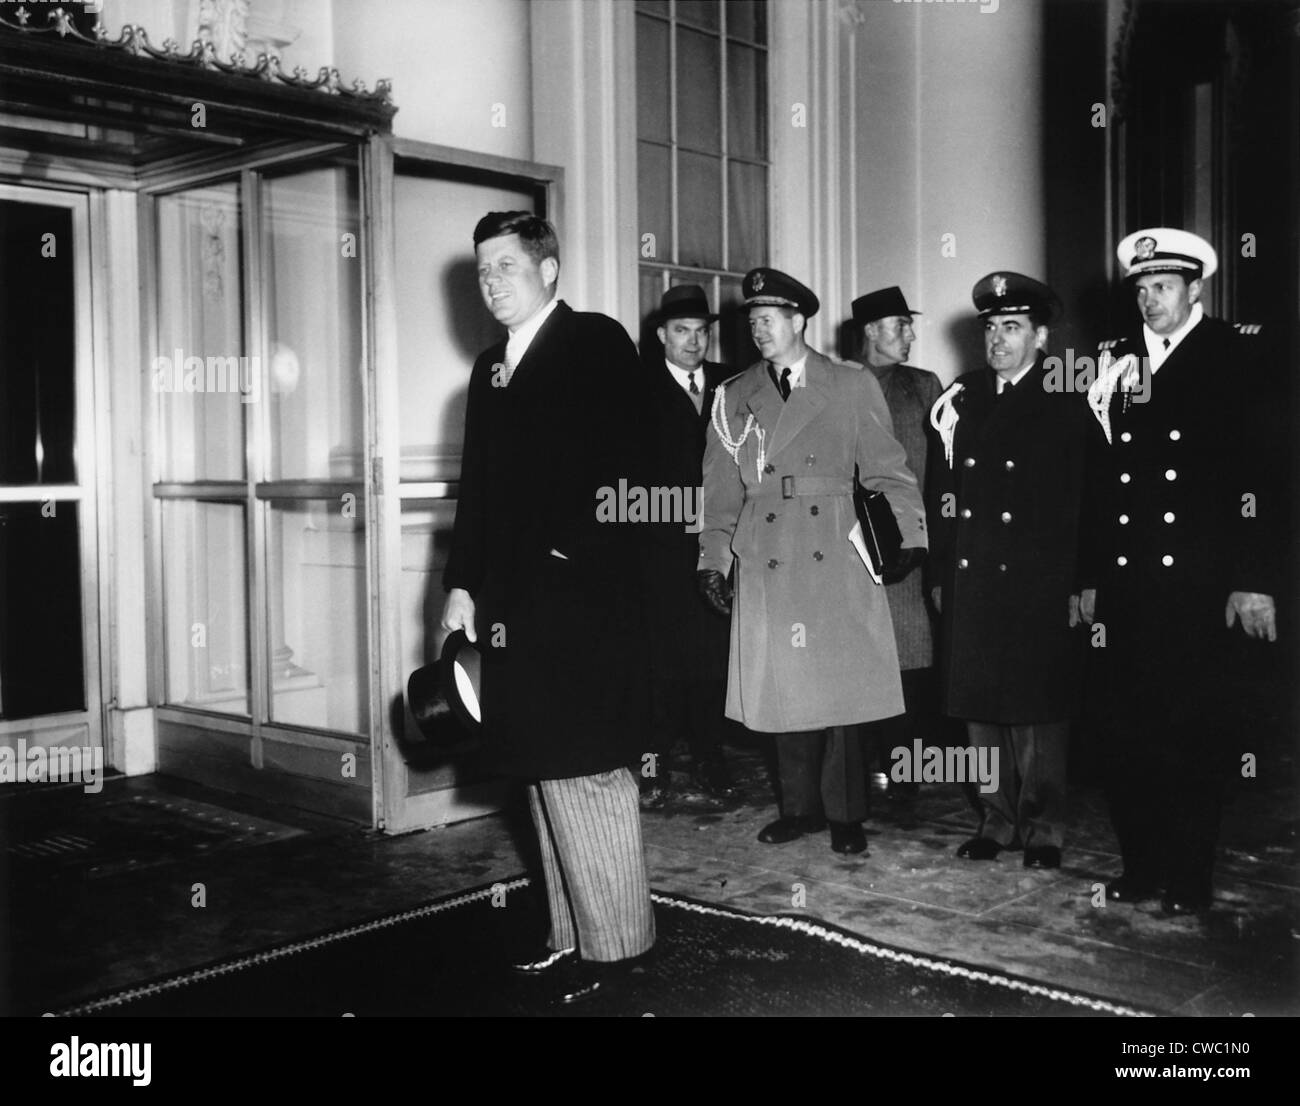 President Kennedy, accompanied by uniformed senior military officers, returns to the White House after attending - Stock Image